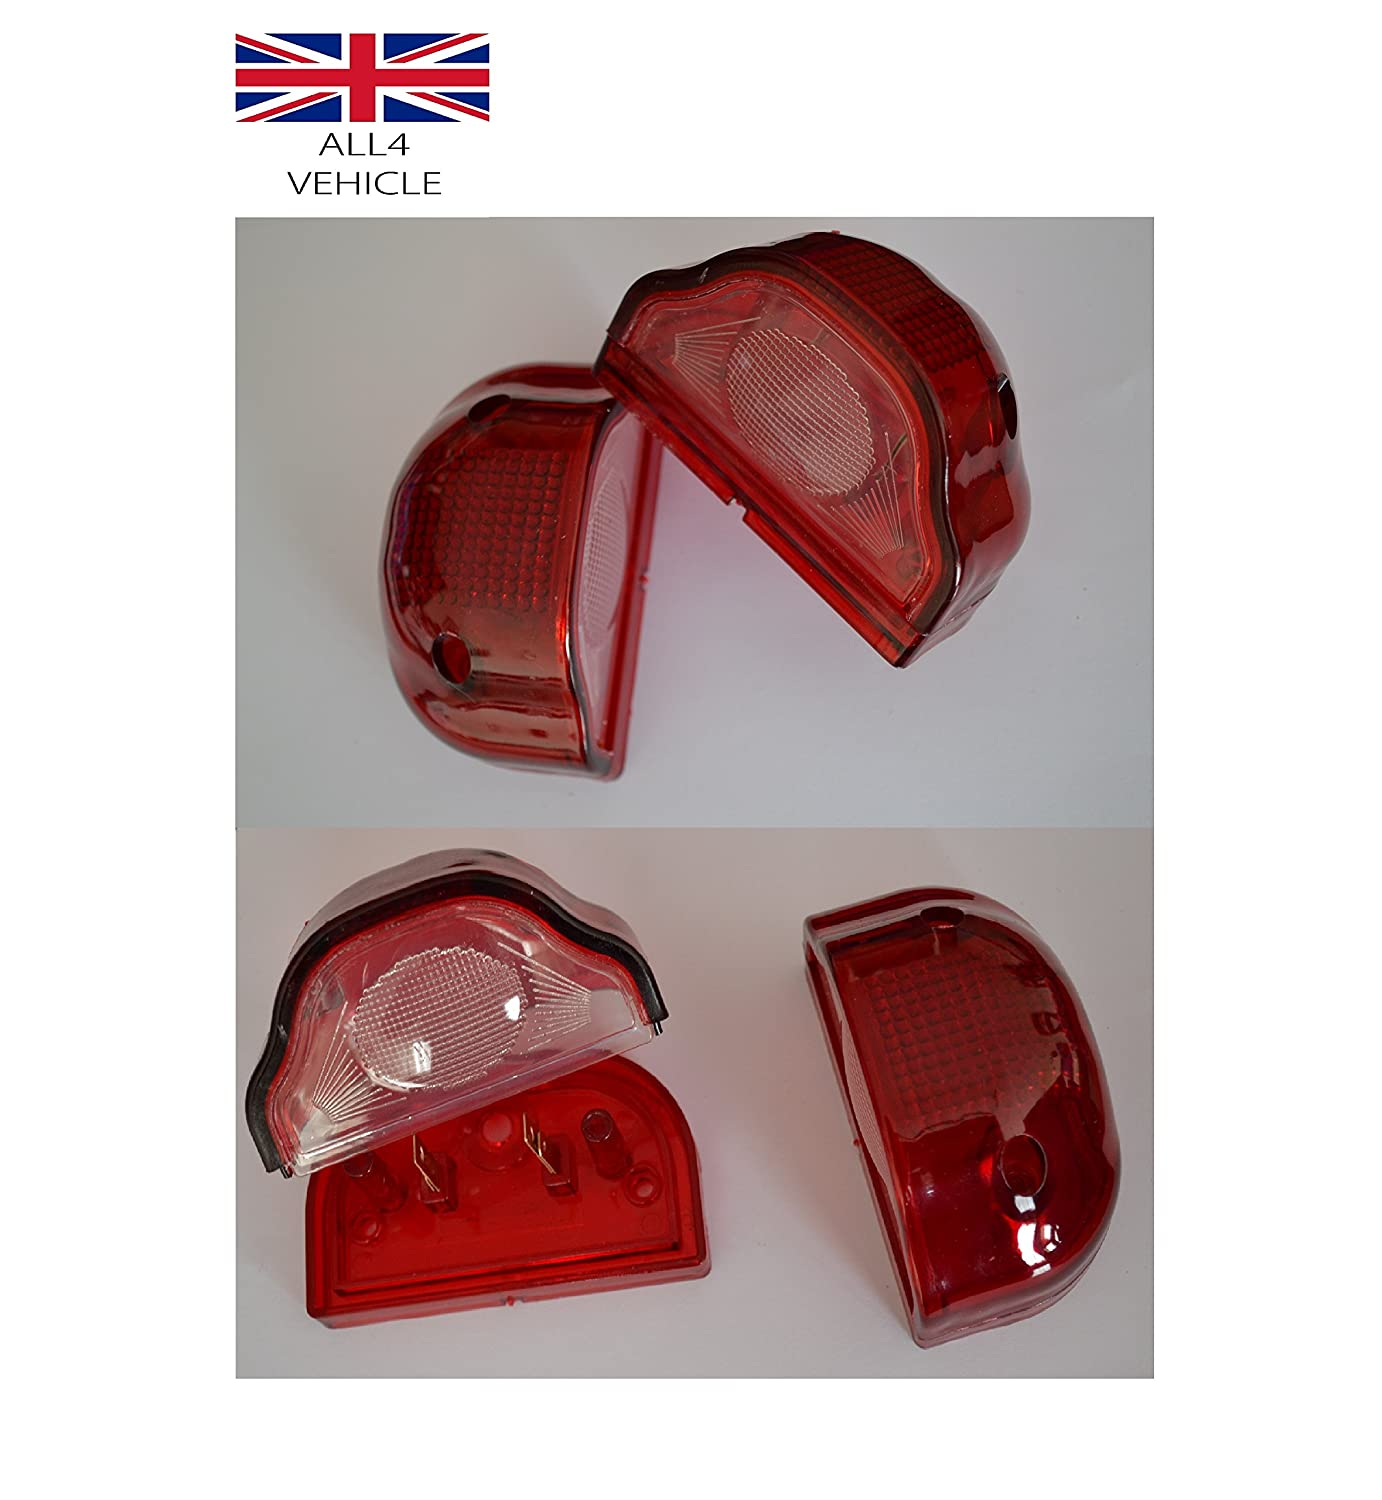 4X RED NUMBER PLATE LAMPS FRONT REAR MARKER LIGHTS TRUCK LORRY BUS CHASSIS VAN EAS LTD